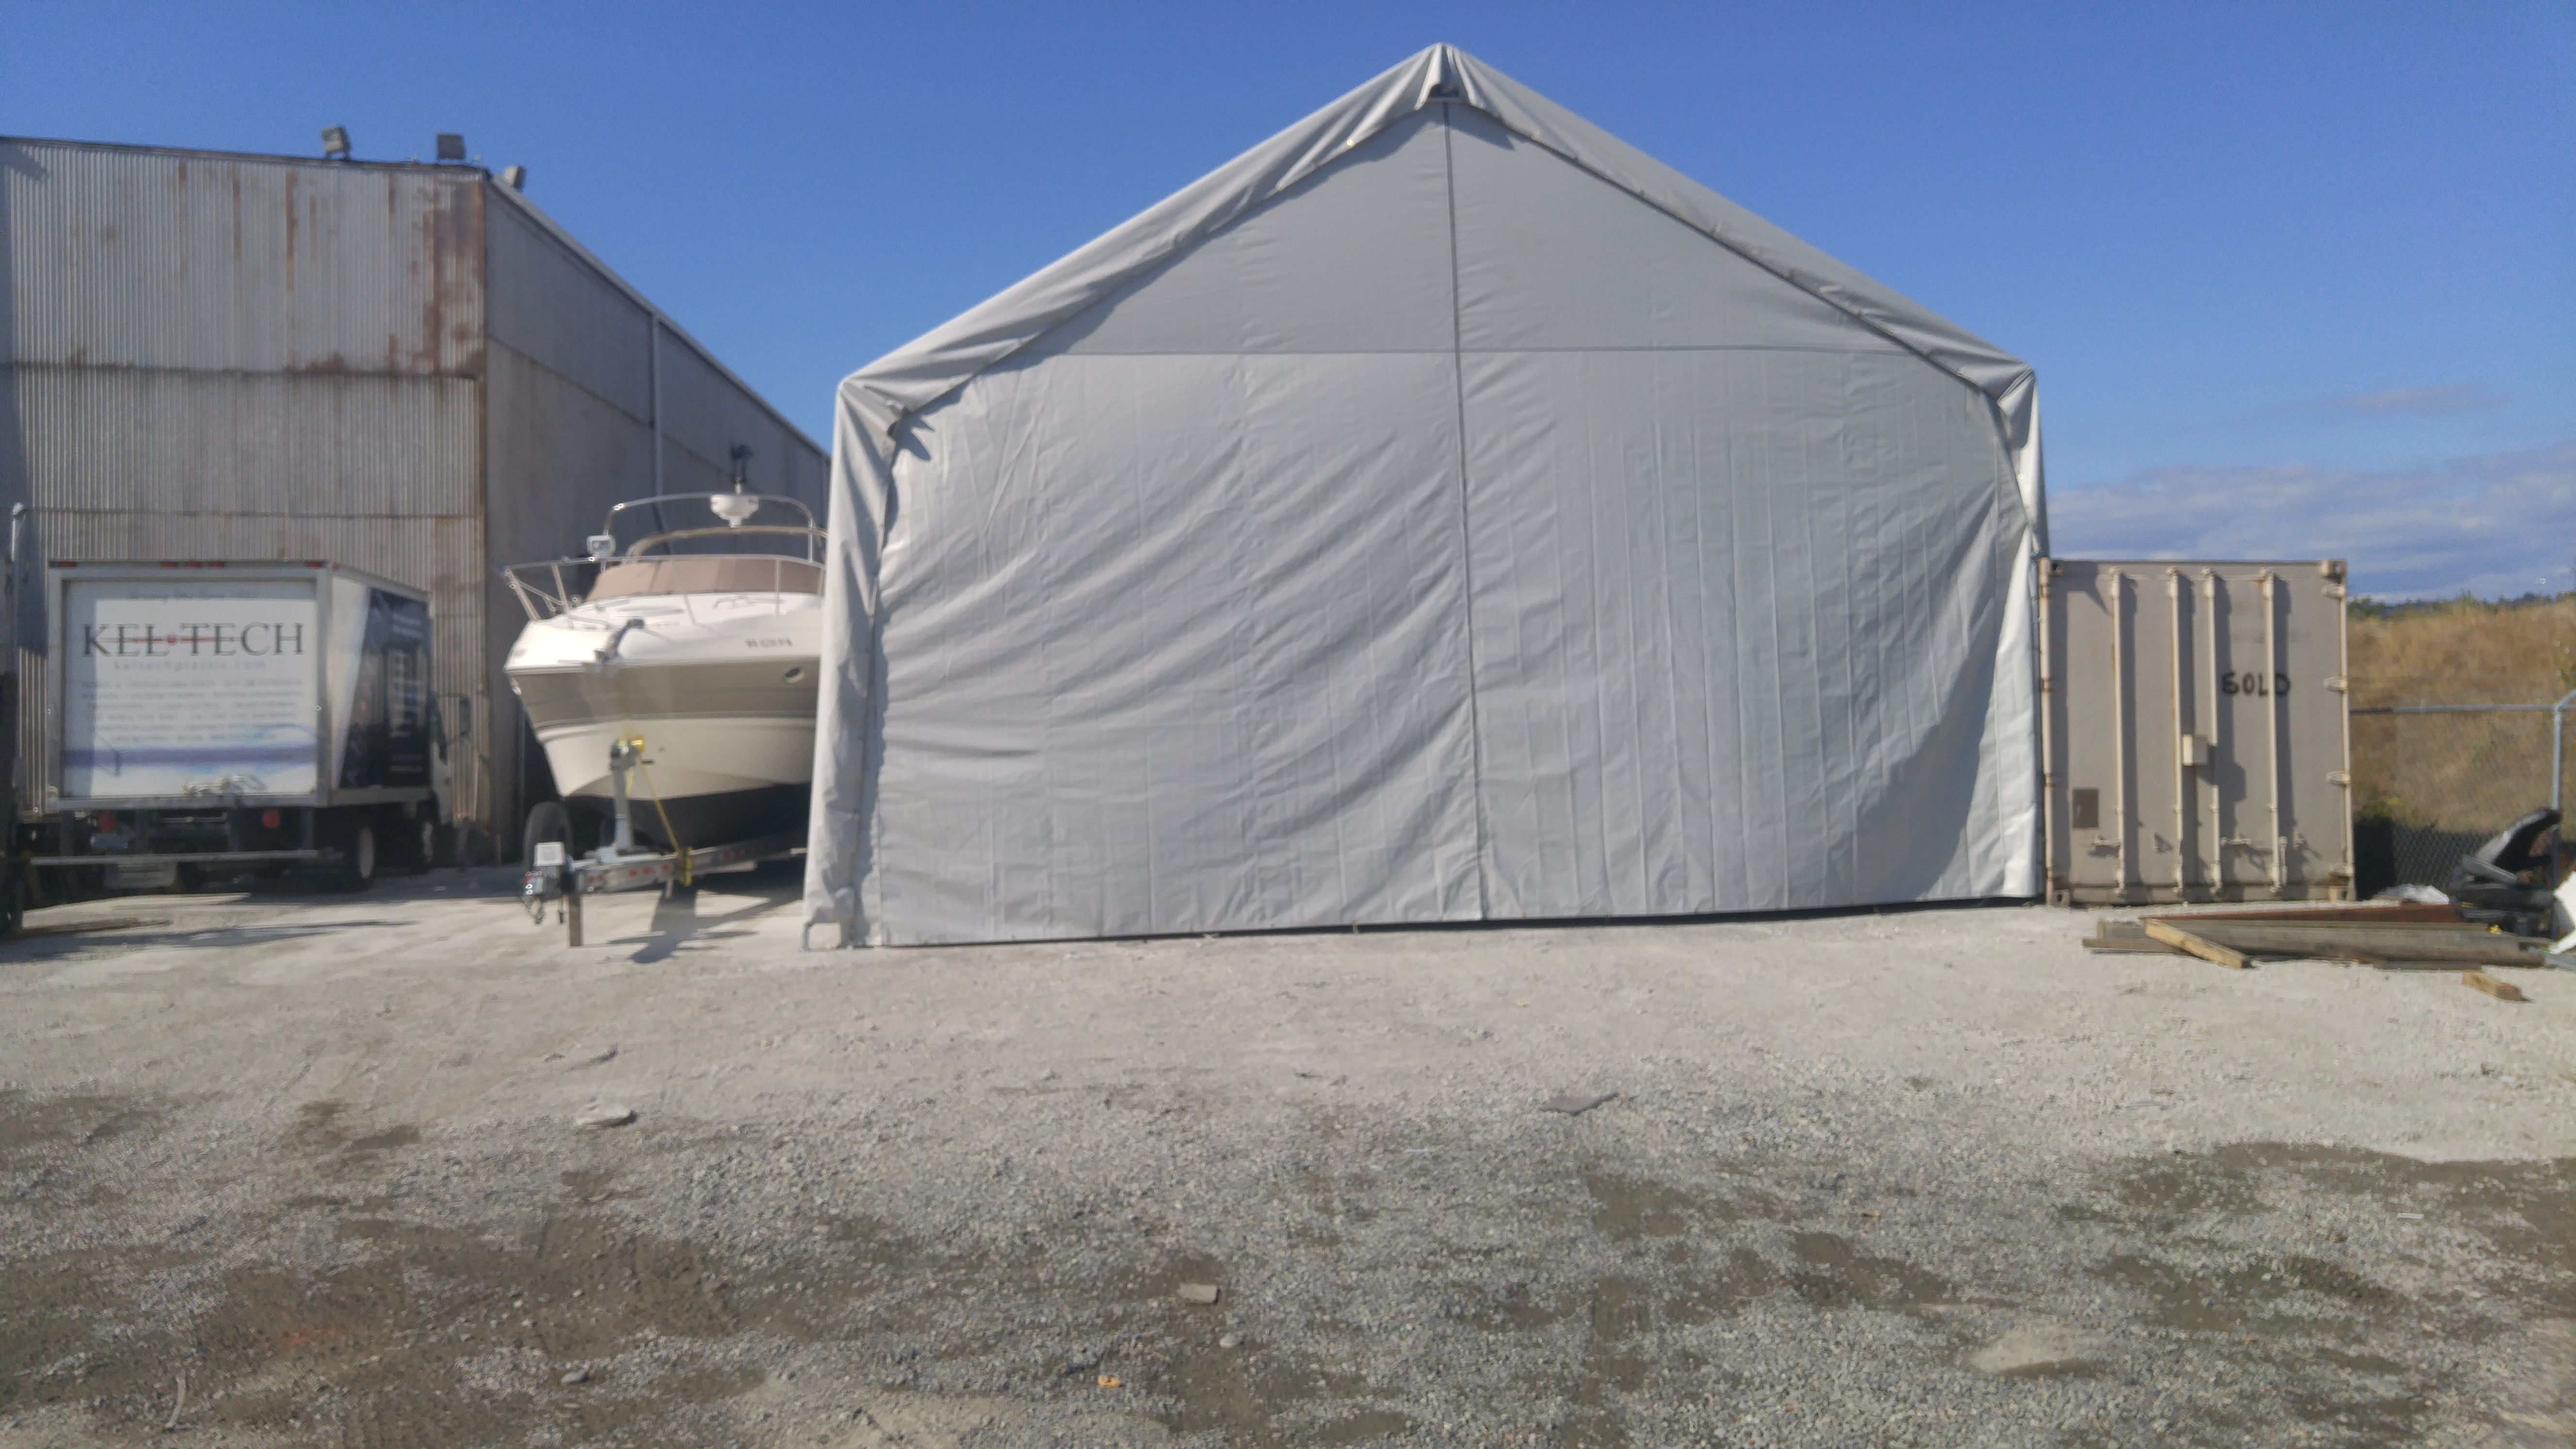 Hiscoshelters.com Commercial Industrial Portable Shelter Logic Carport  Garage Canopy Material Equipment Covers, Custom